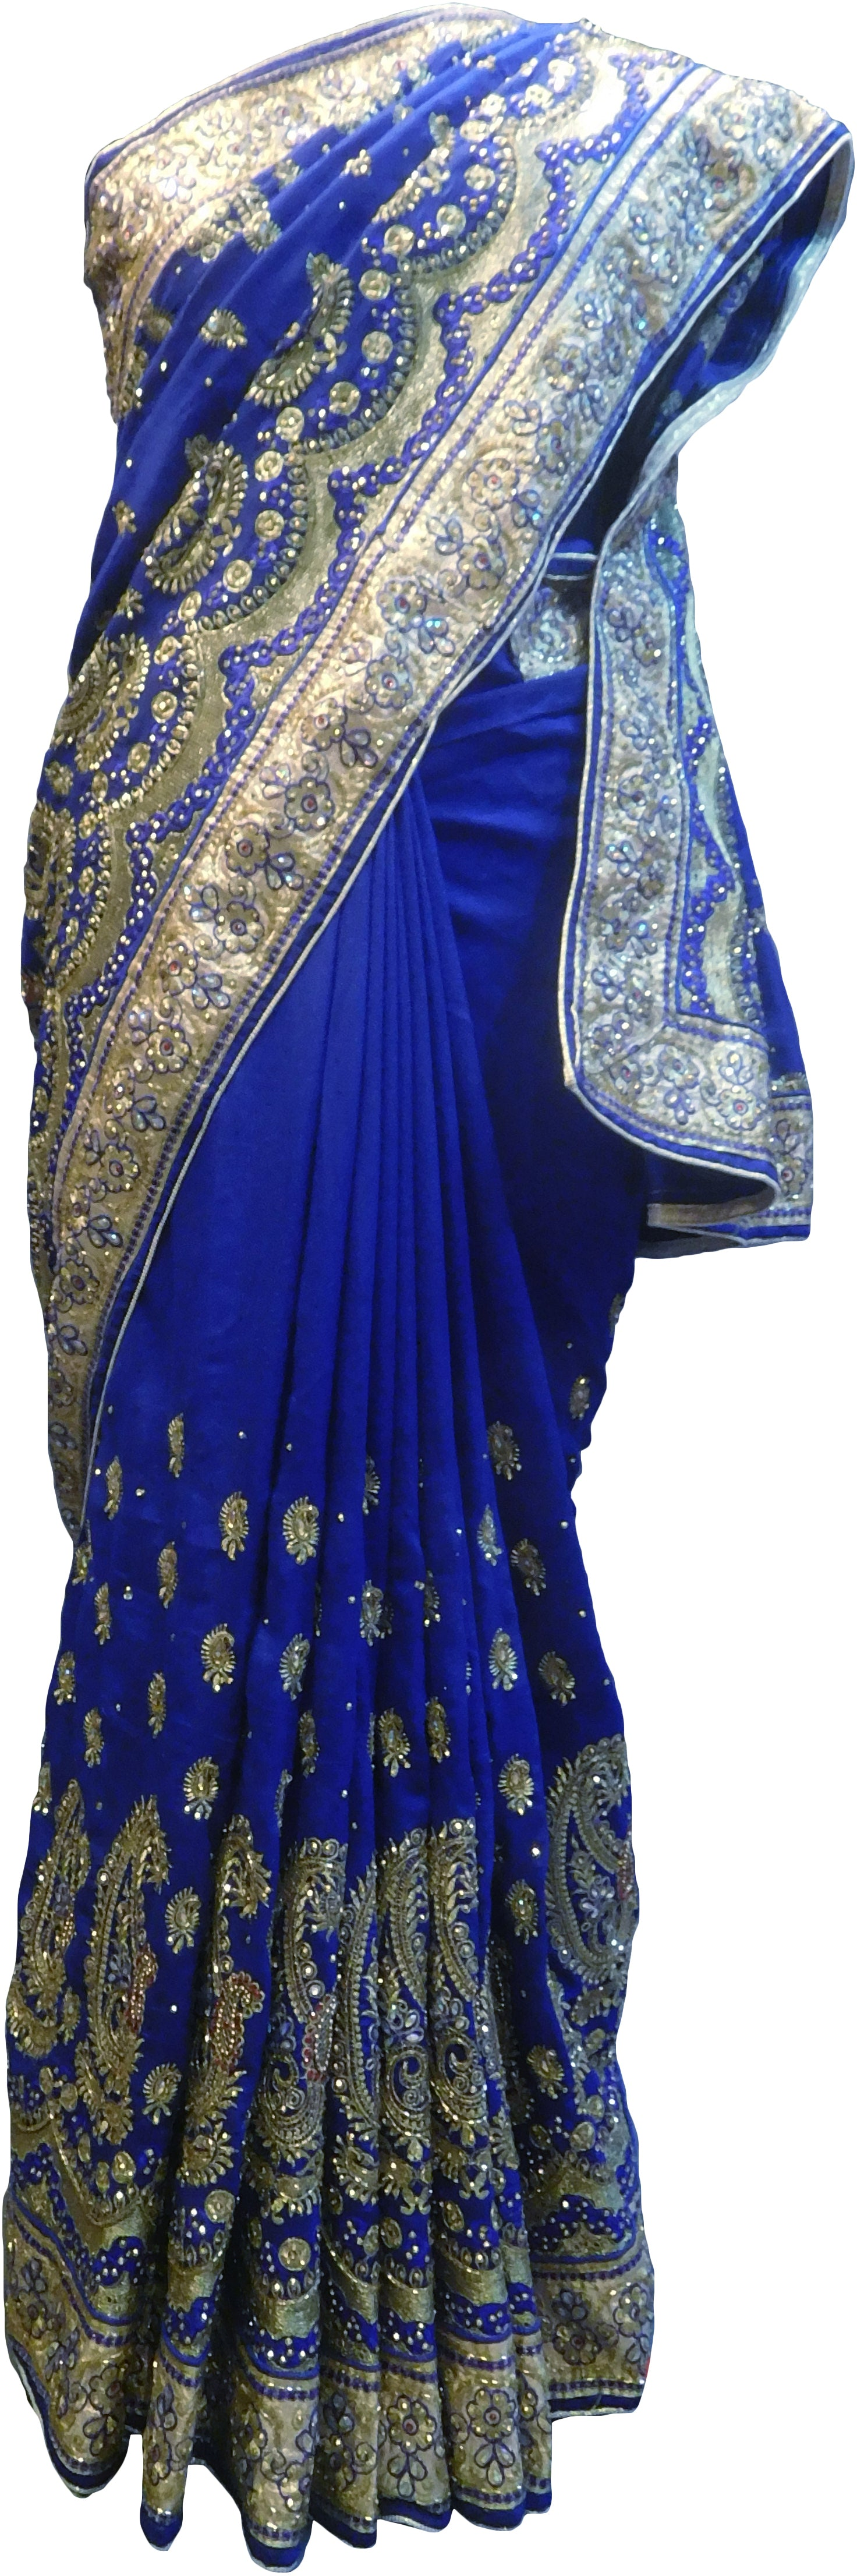 SMSAREE  blue  Designer Wedding Partywear Silk (Vichitra) Zari Cutdana Thread & Stone Hand Embroidery Work Bridal Saree Sari With Blouse Piece F196